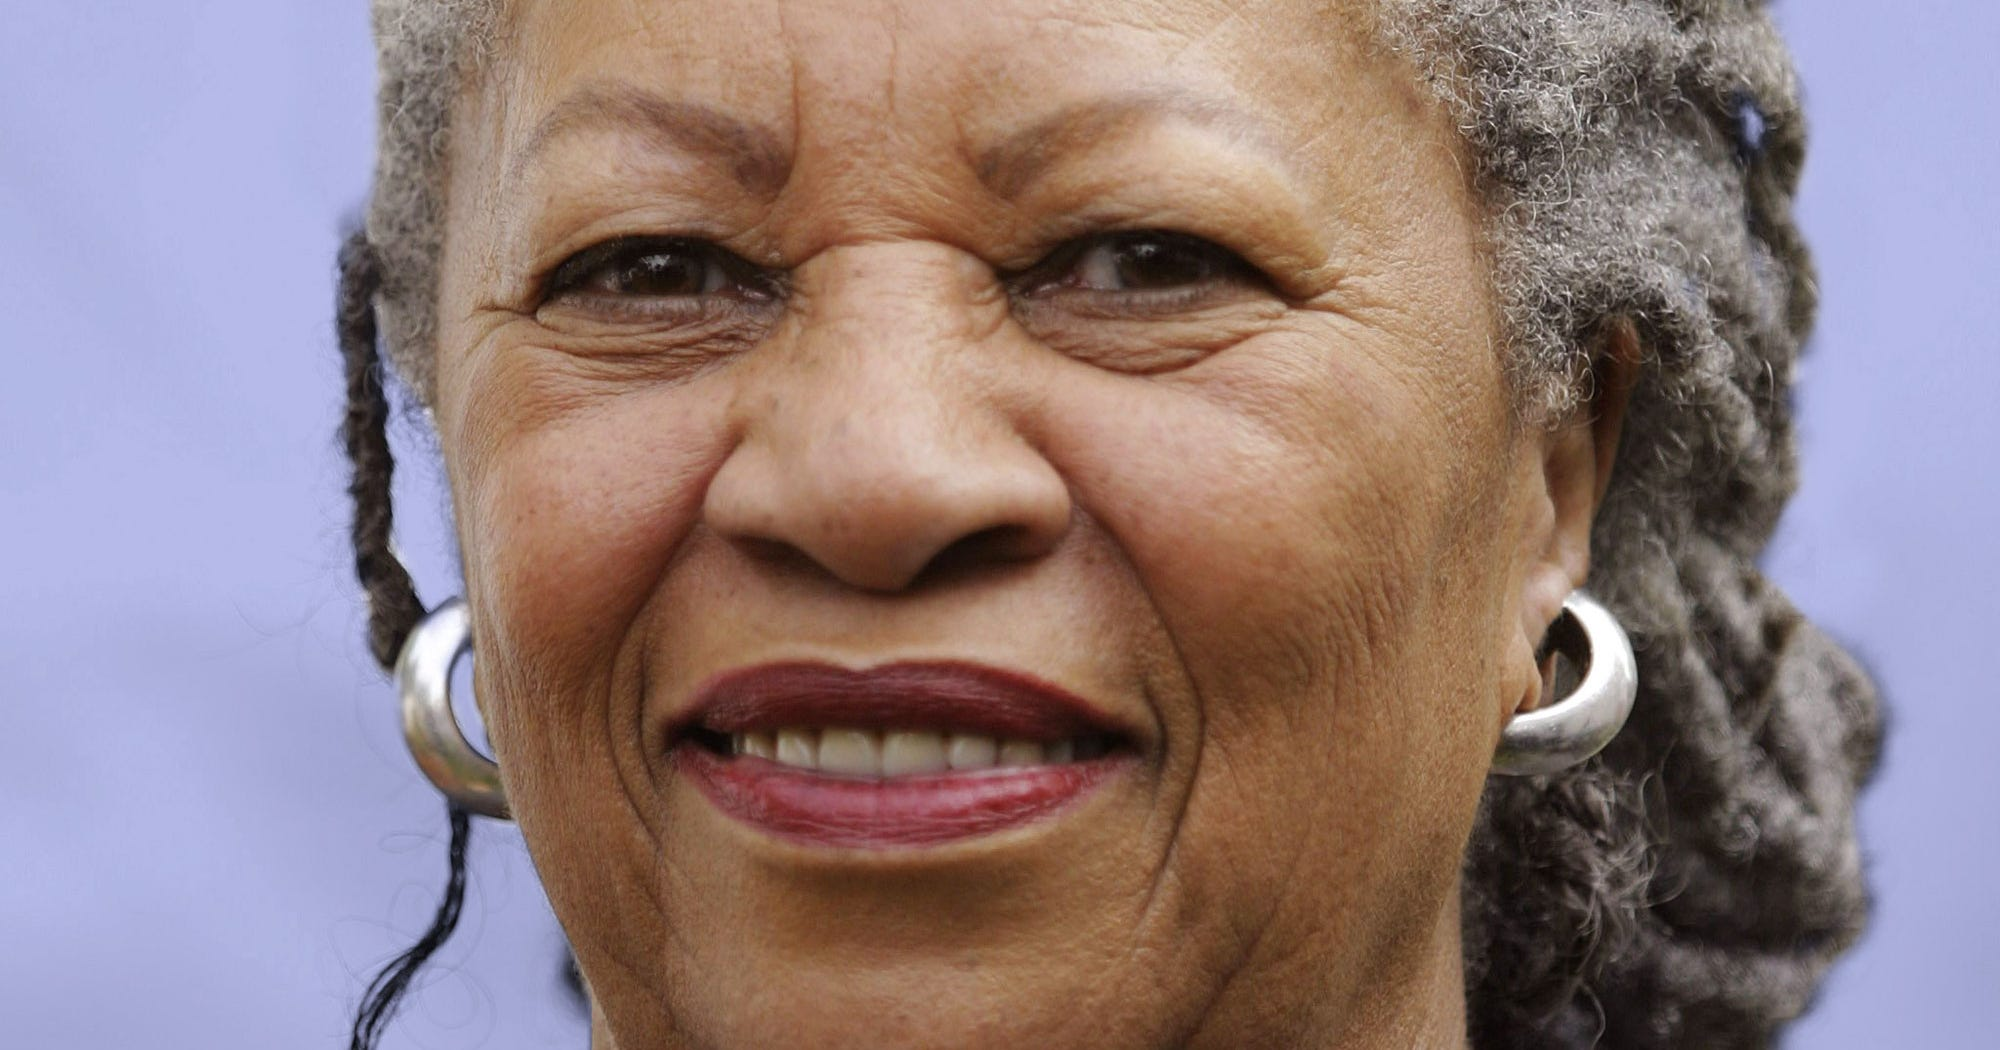 7 famous women talked about their abortion